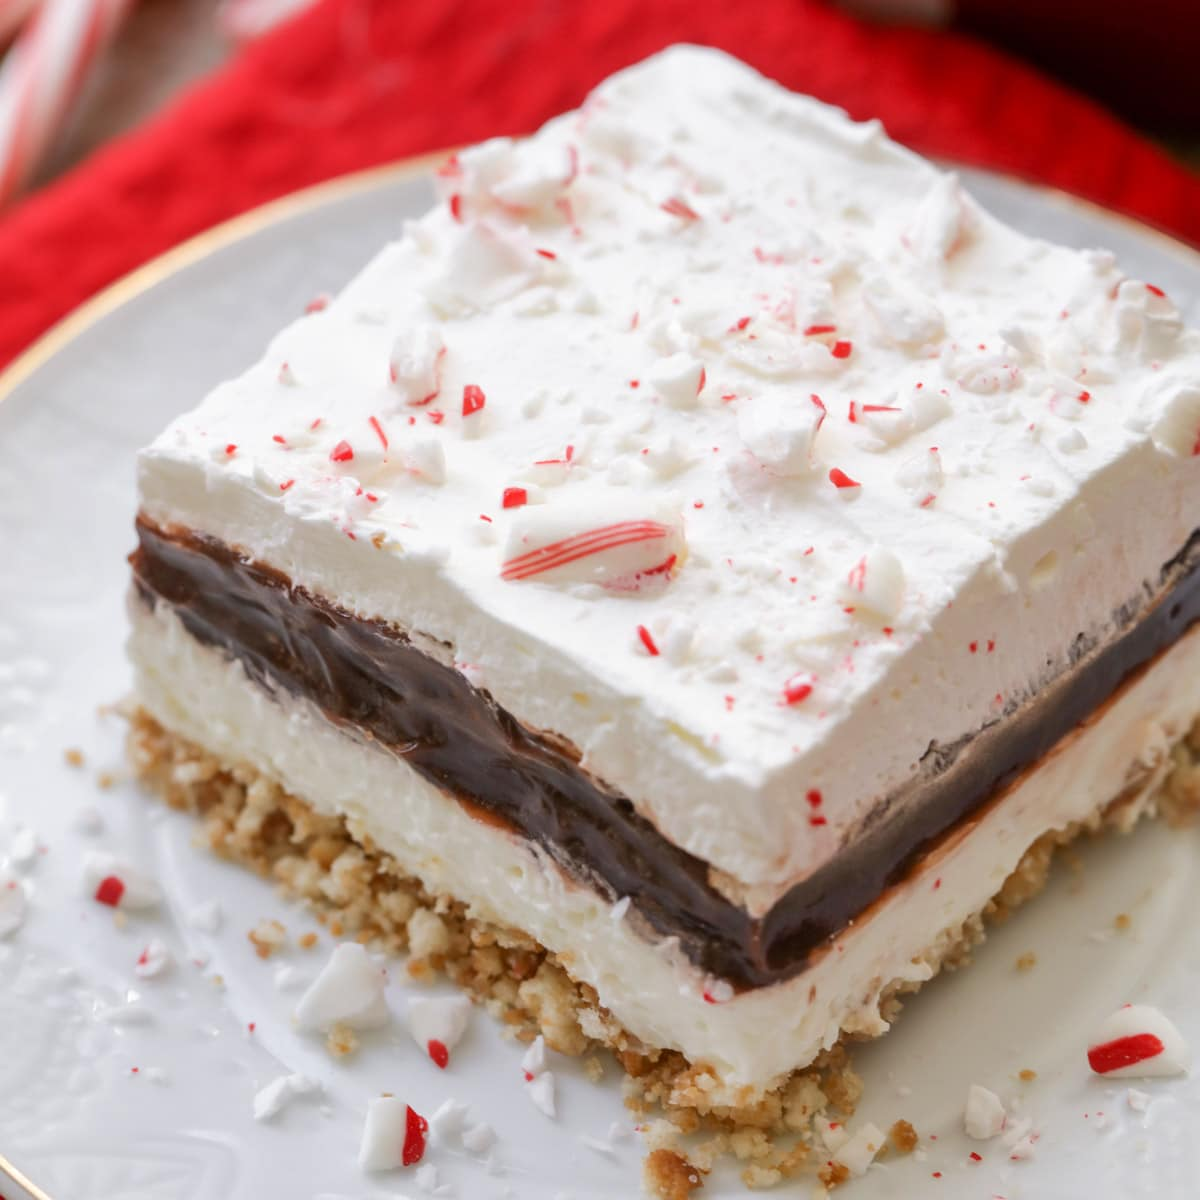 Slice of peppermint chocolate delight on a white plate.